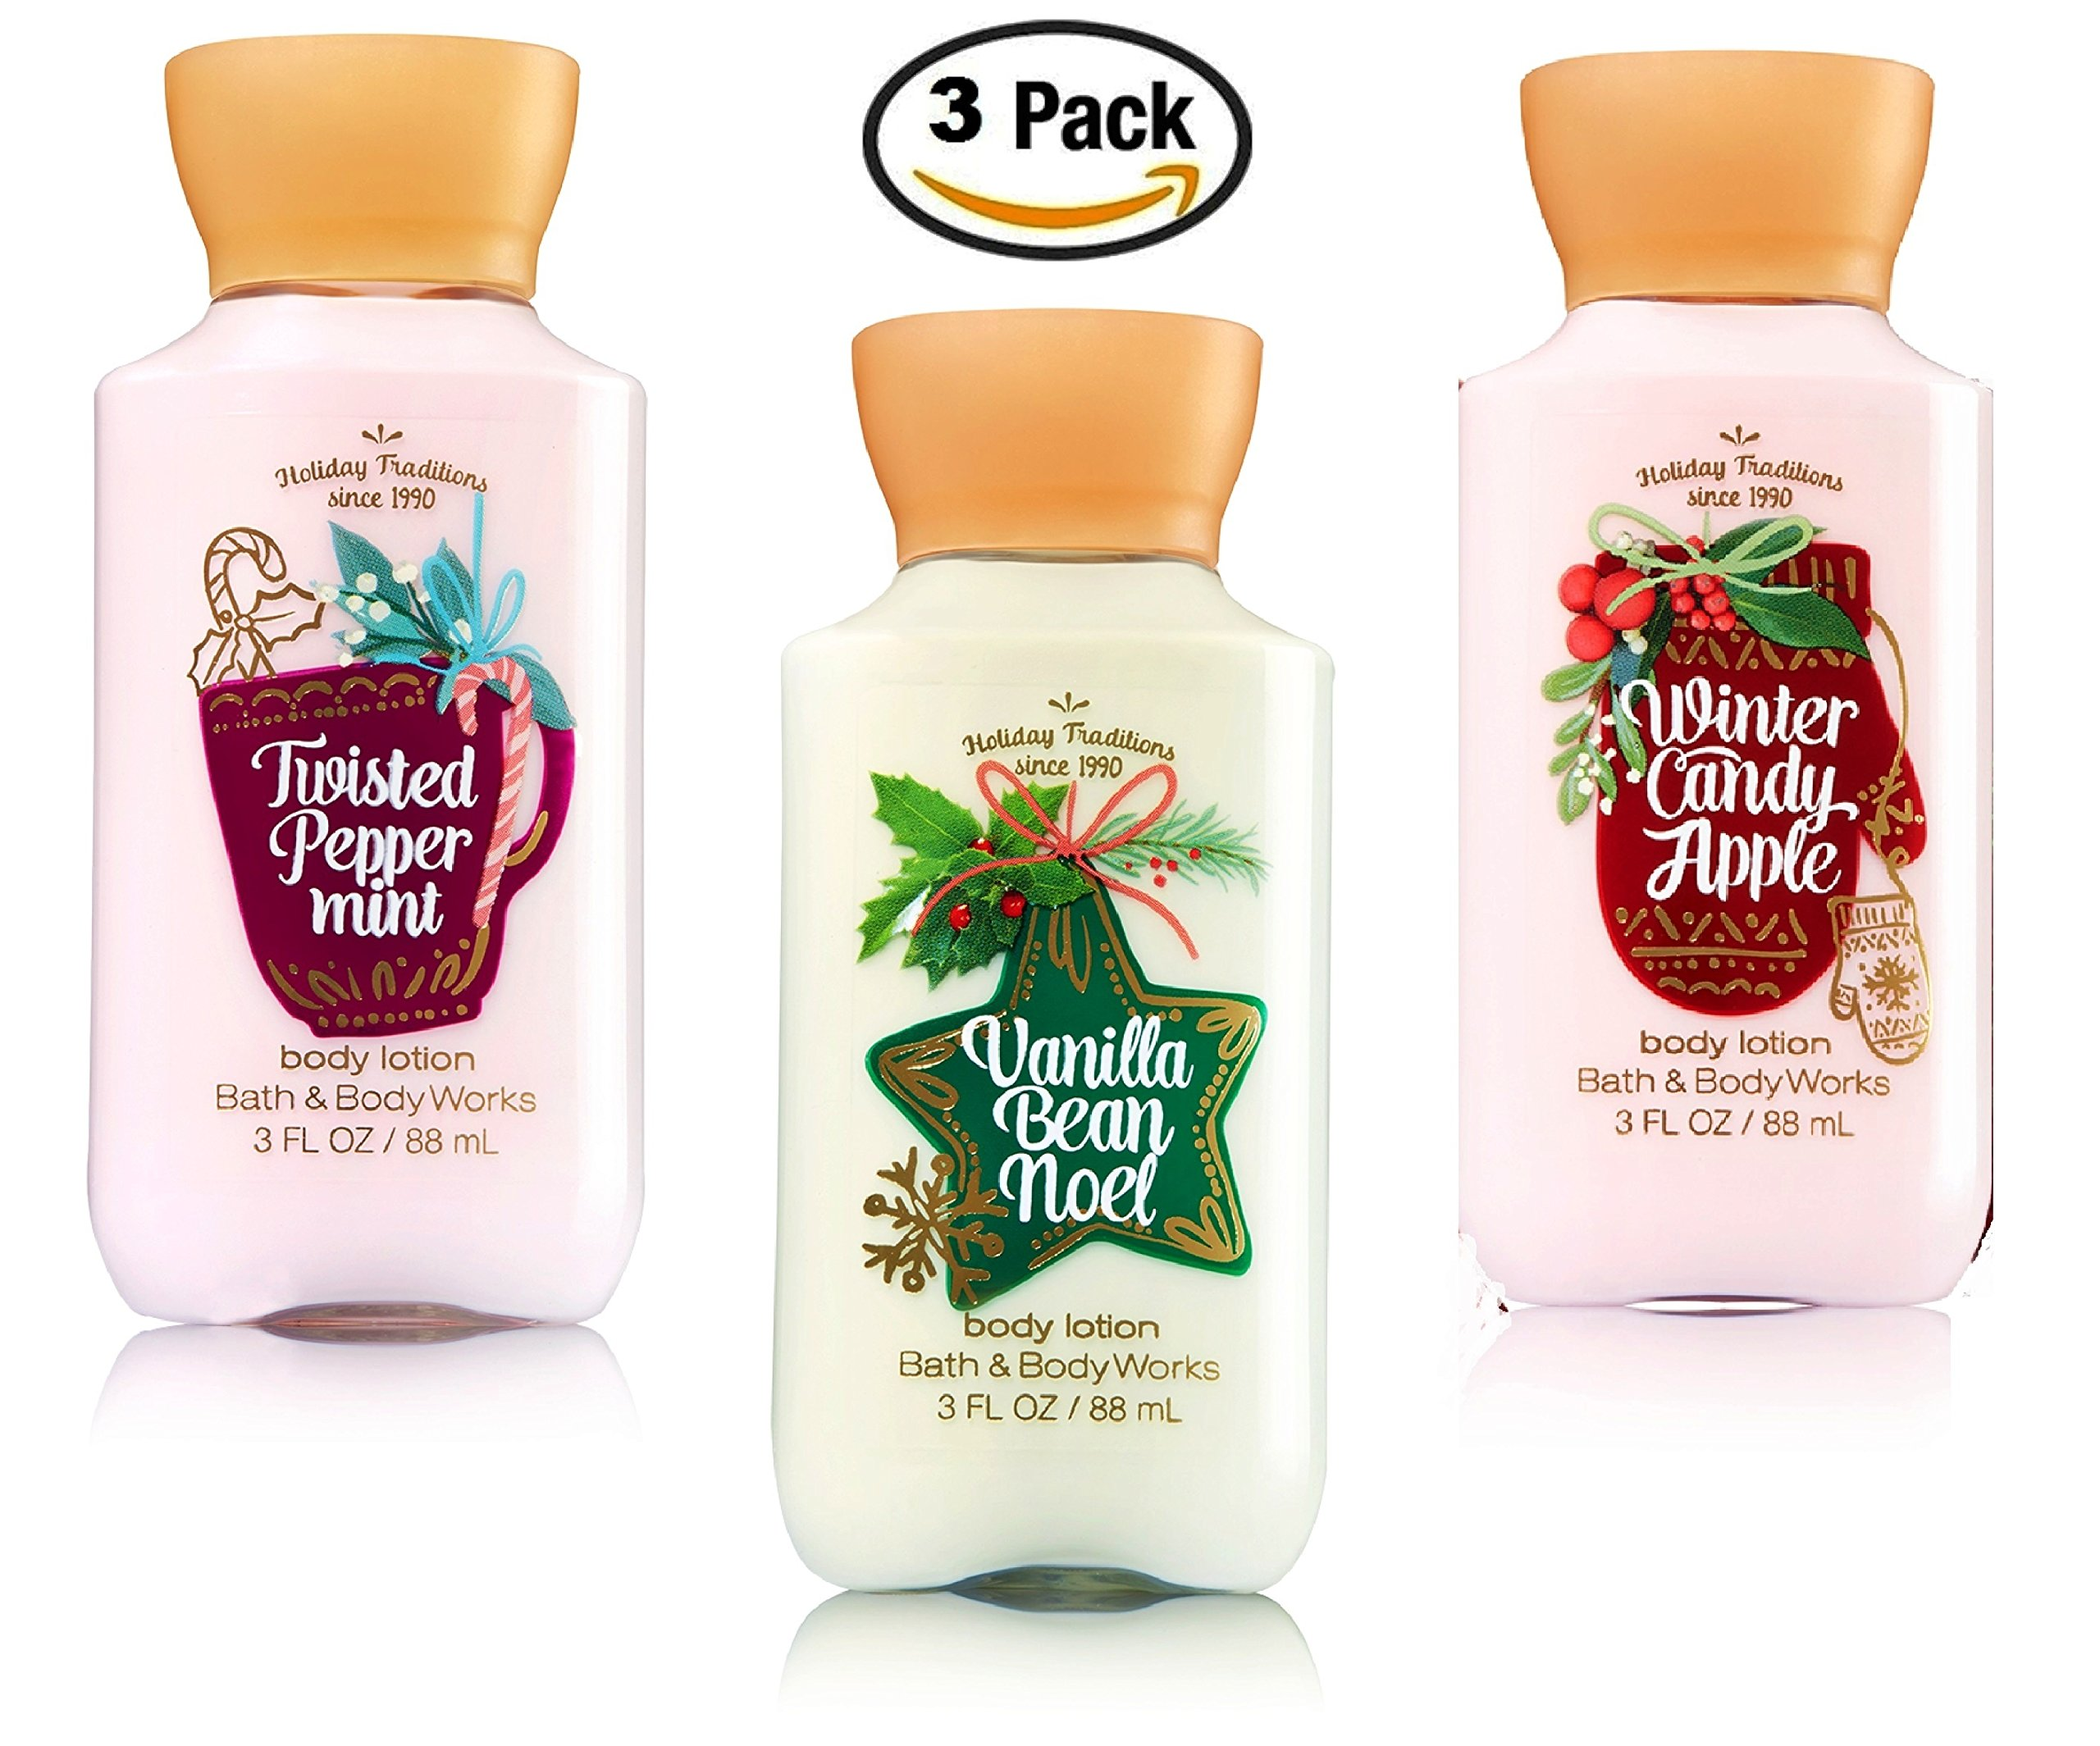 Bath and body works holiday scents - Bath Body Works 2015 Holiday Tradition S Trio 3oz Travel Lotions Gift Set Winter Candy